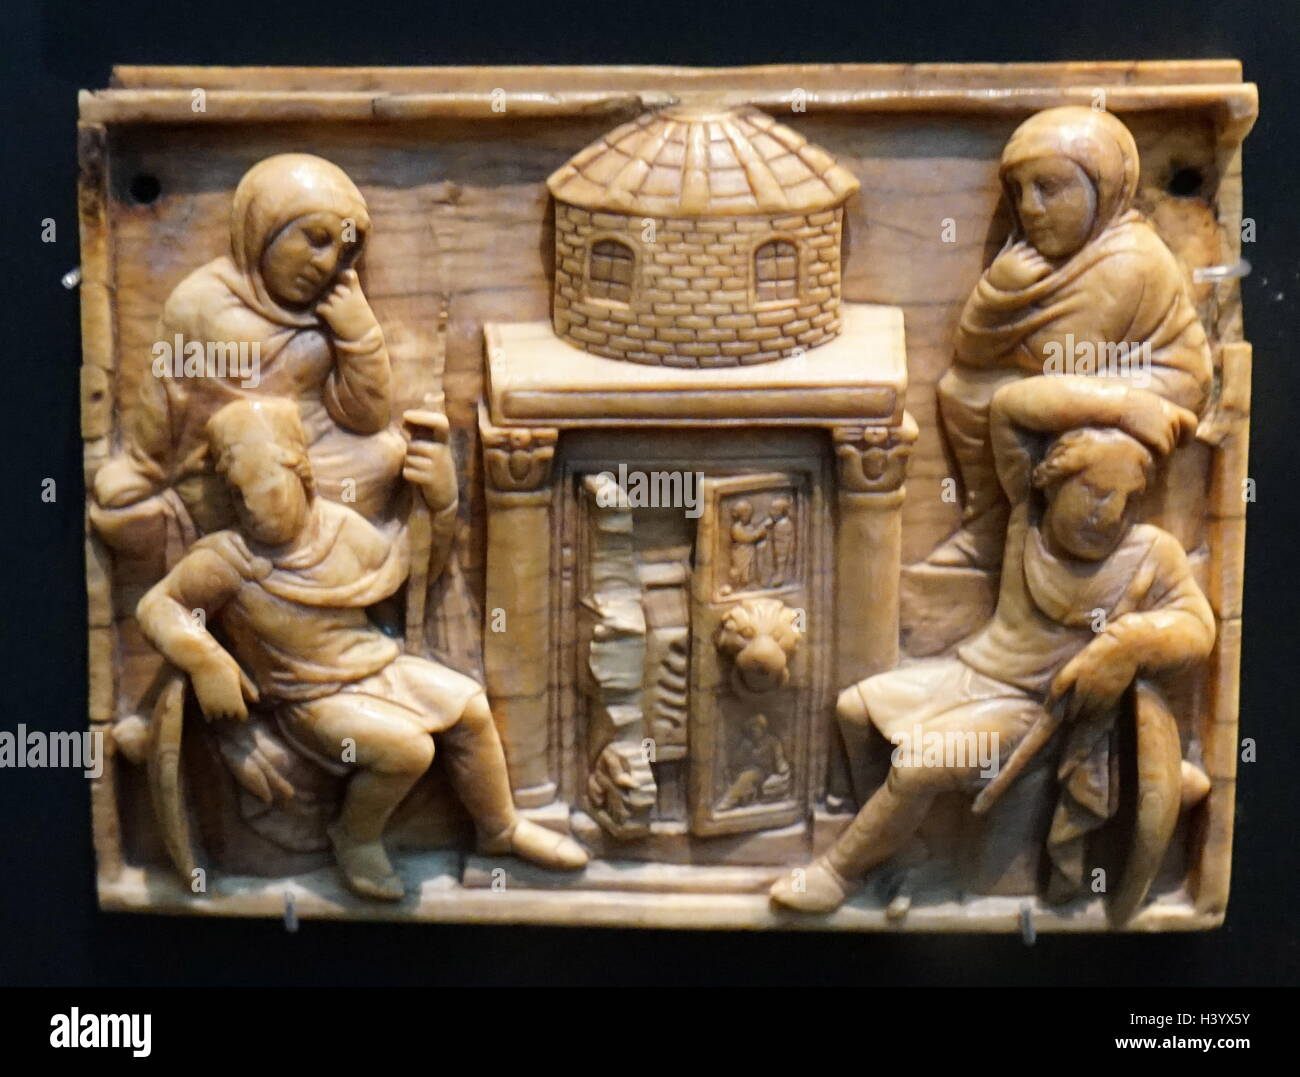 Ivory casket panels depicting events around the death of Christ. Dated 5th Century - Stock Image